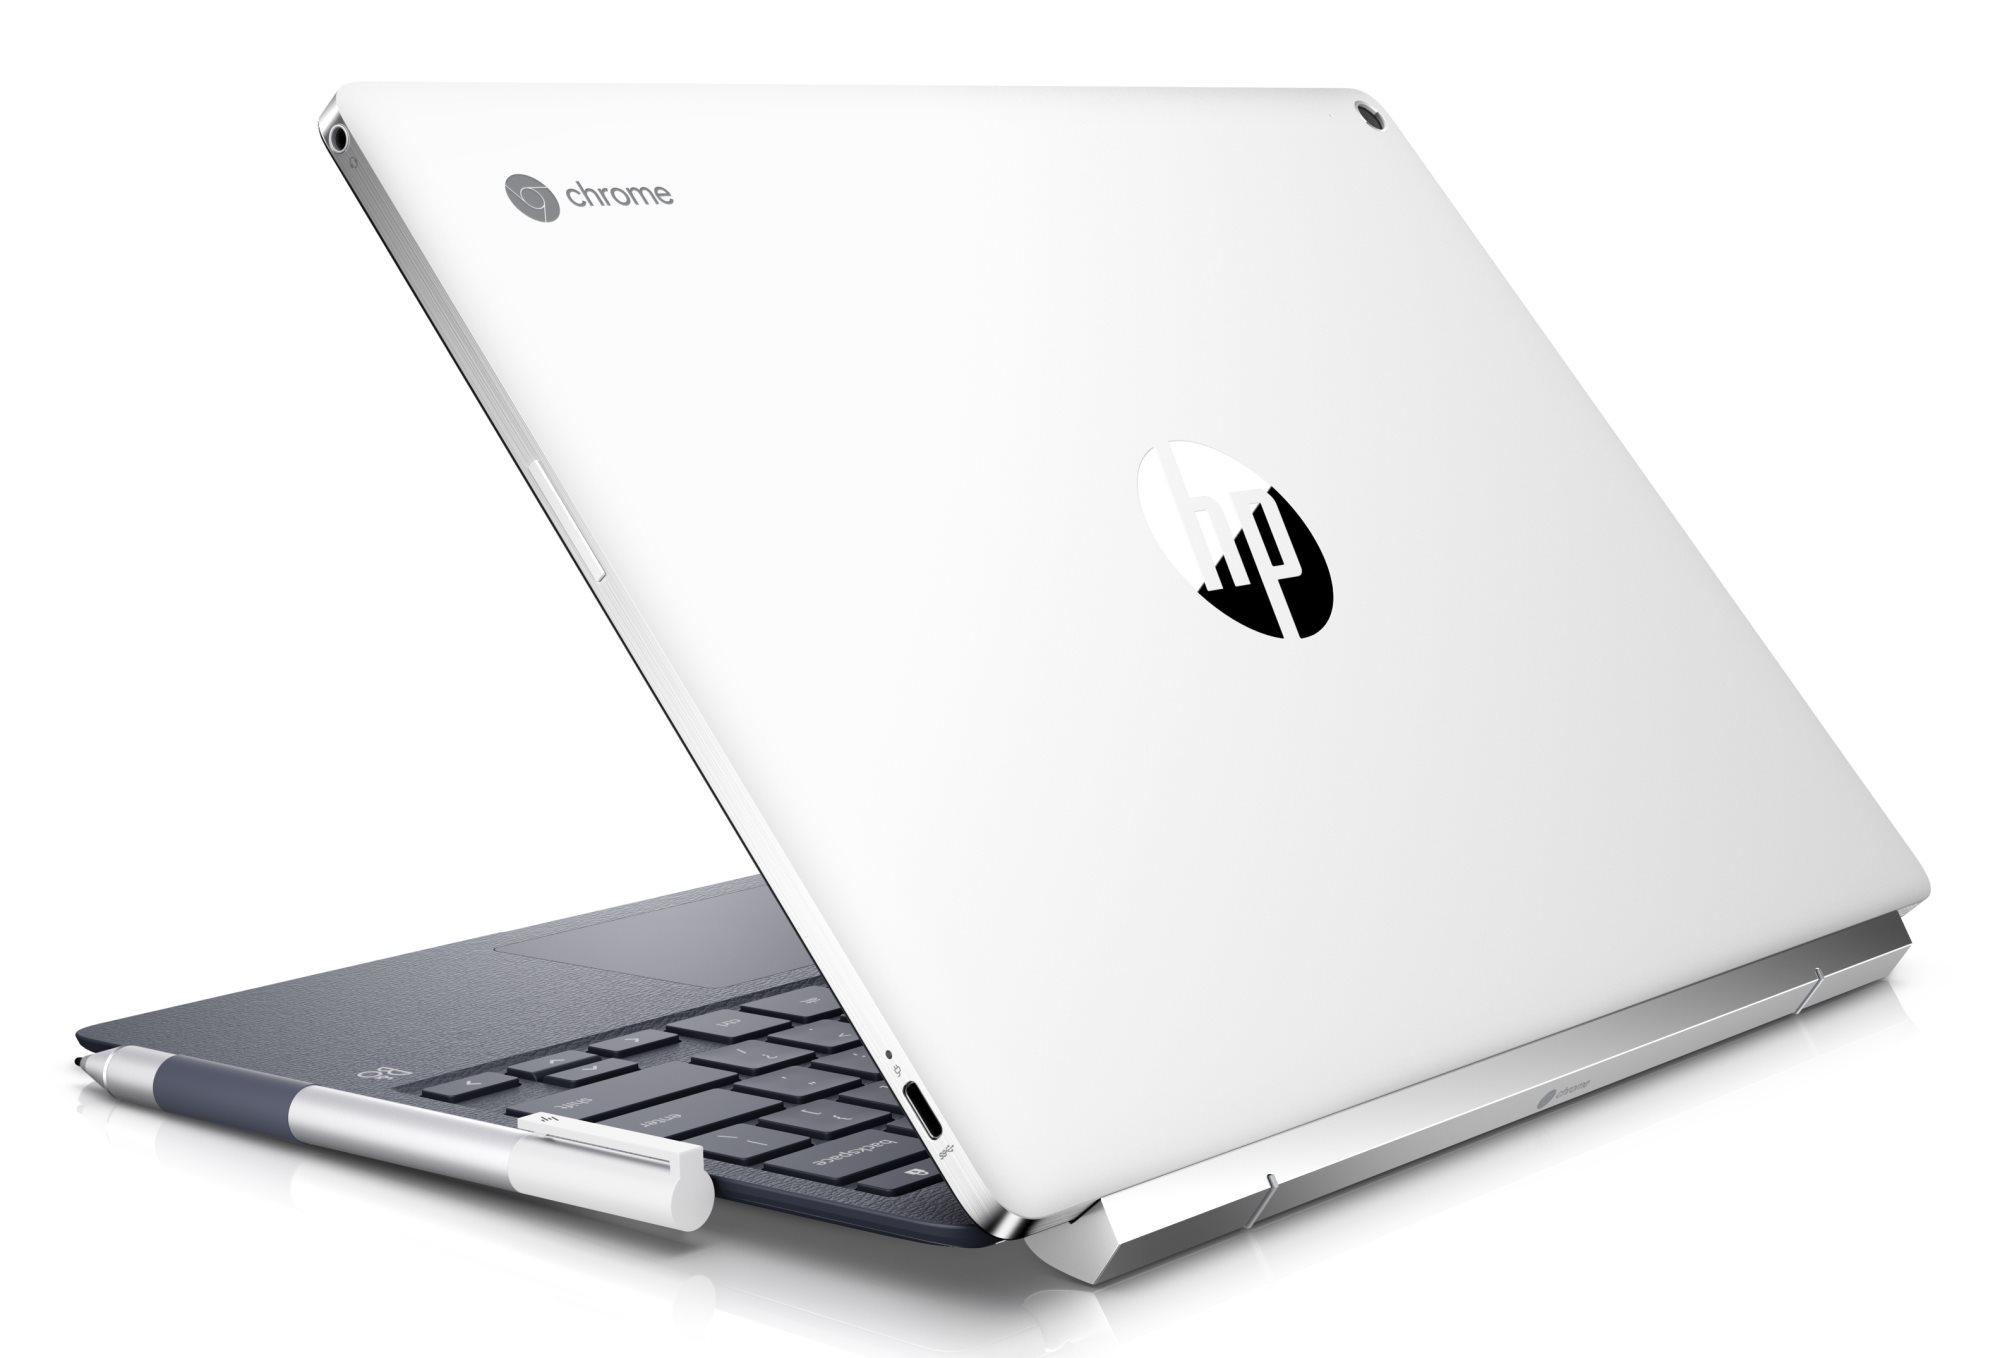 HP announces the first Chrome OS detachable, the Chromebook x2